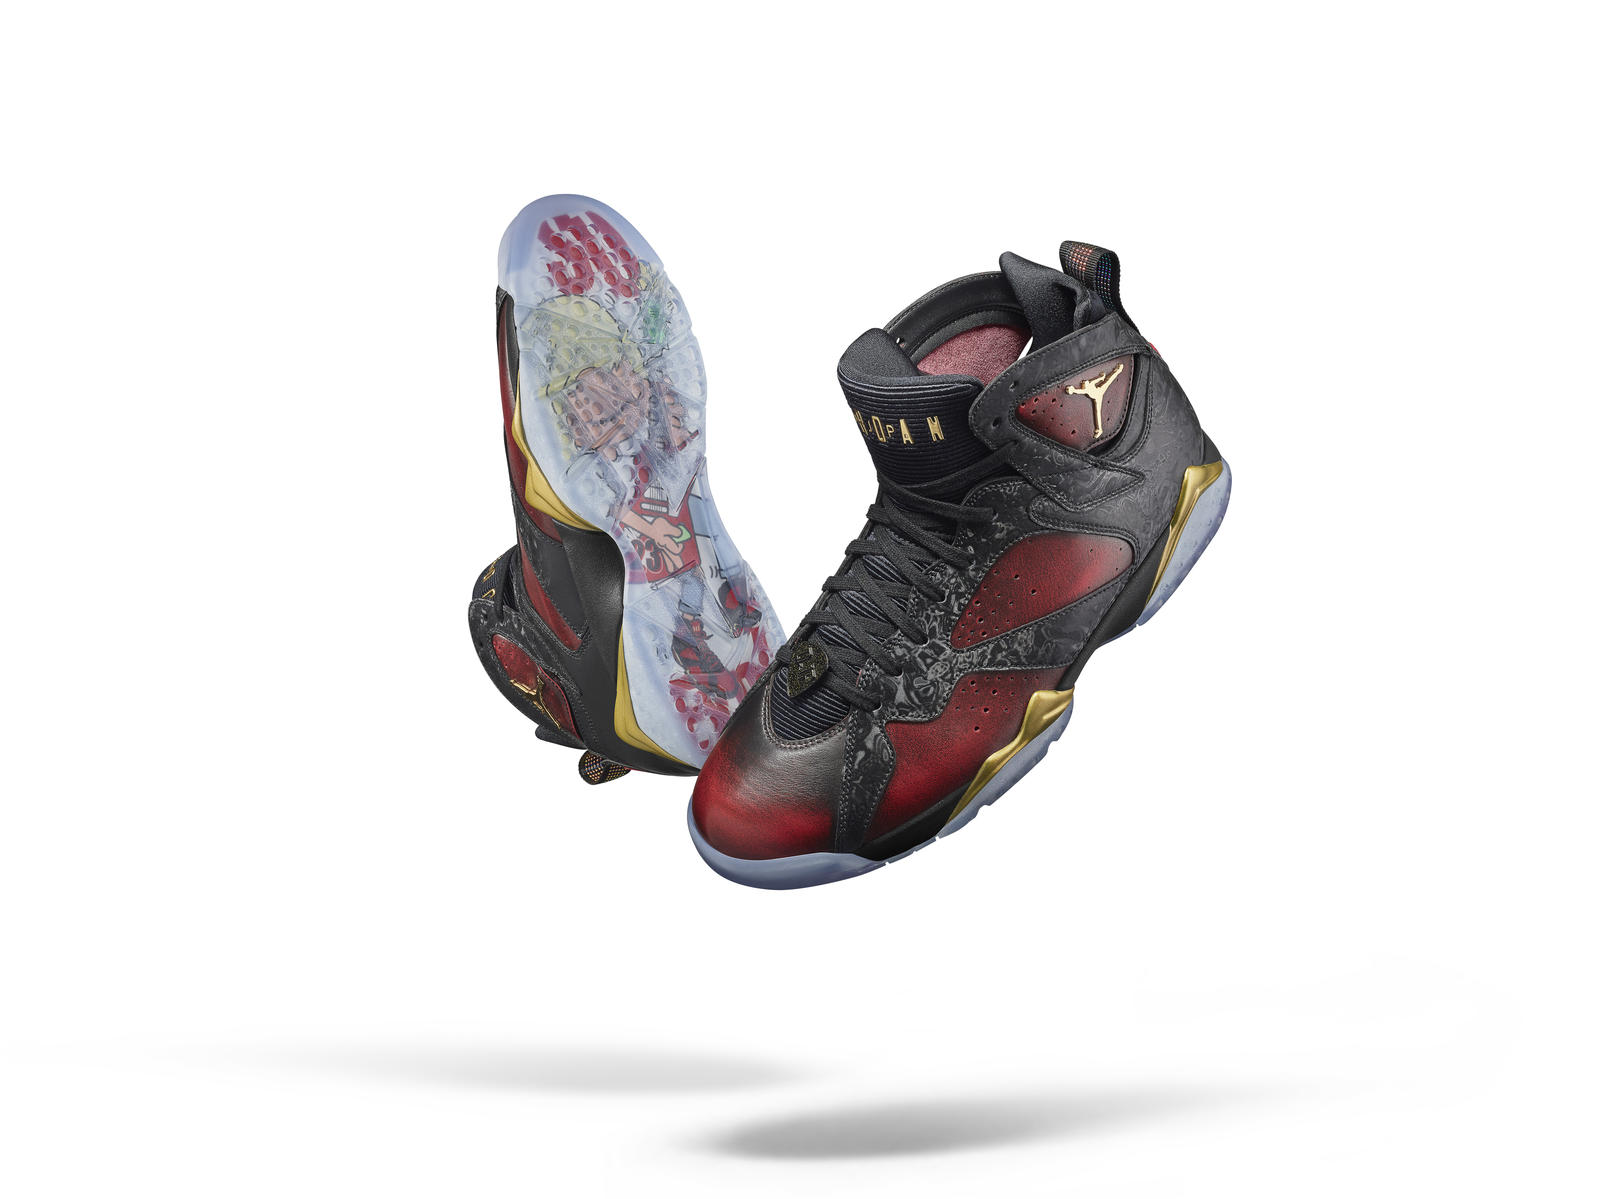 timeless design 0a548 24ccb Introducing the 13th Doernbecher Freestyle Collection. Damien Phillips  designed the Air Jordan VII ...